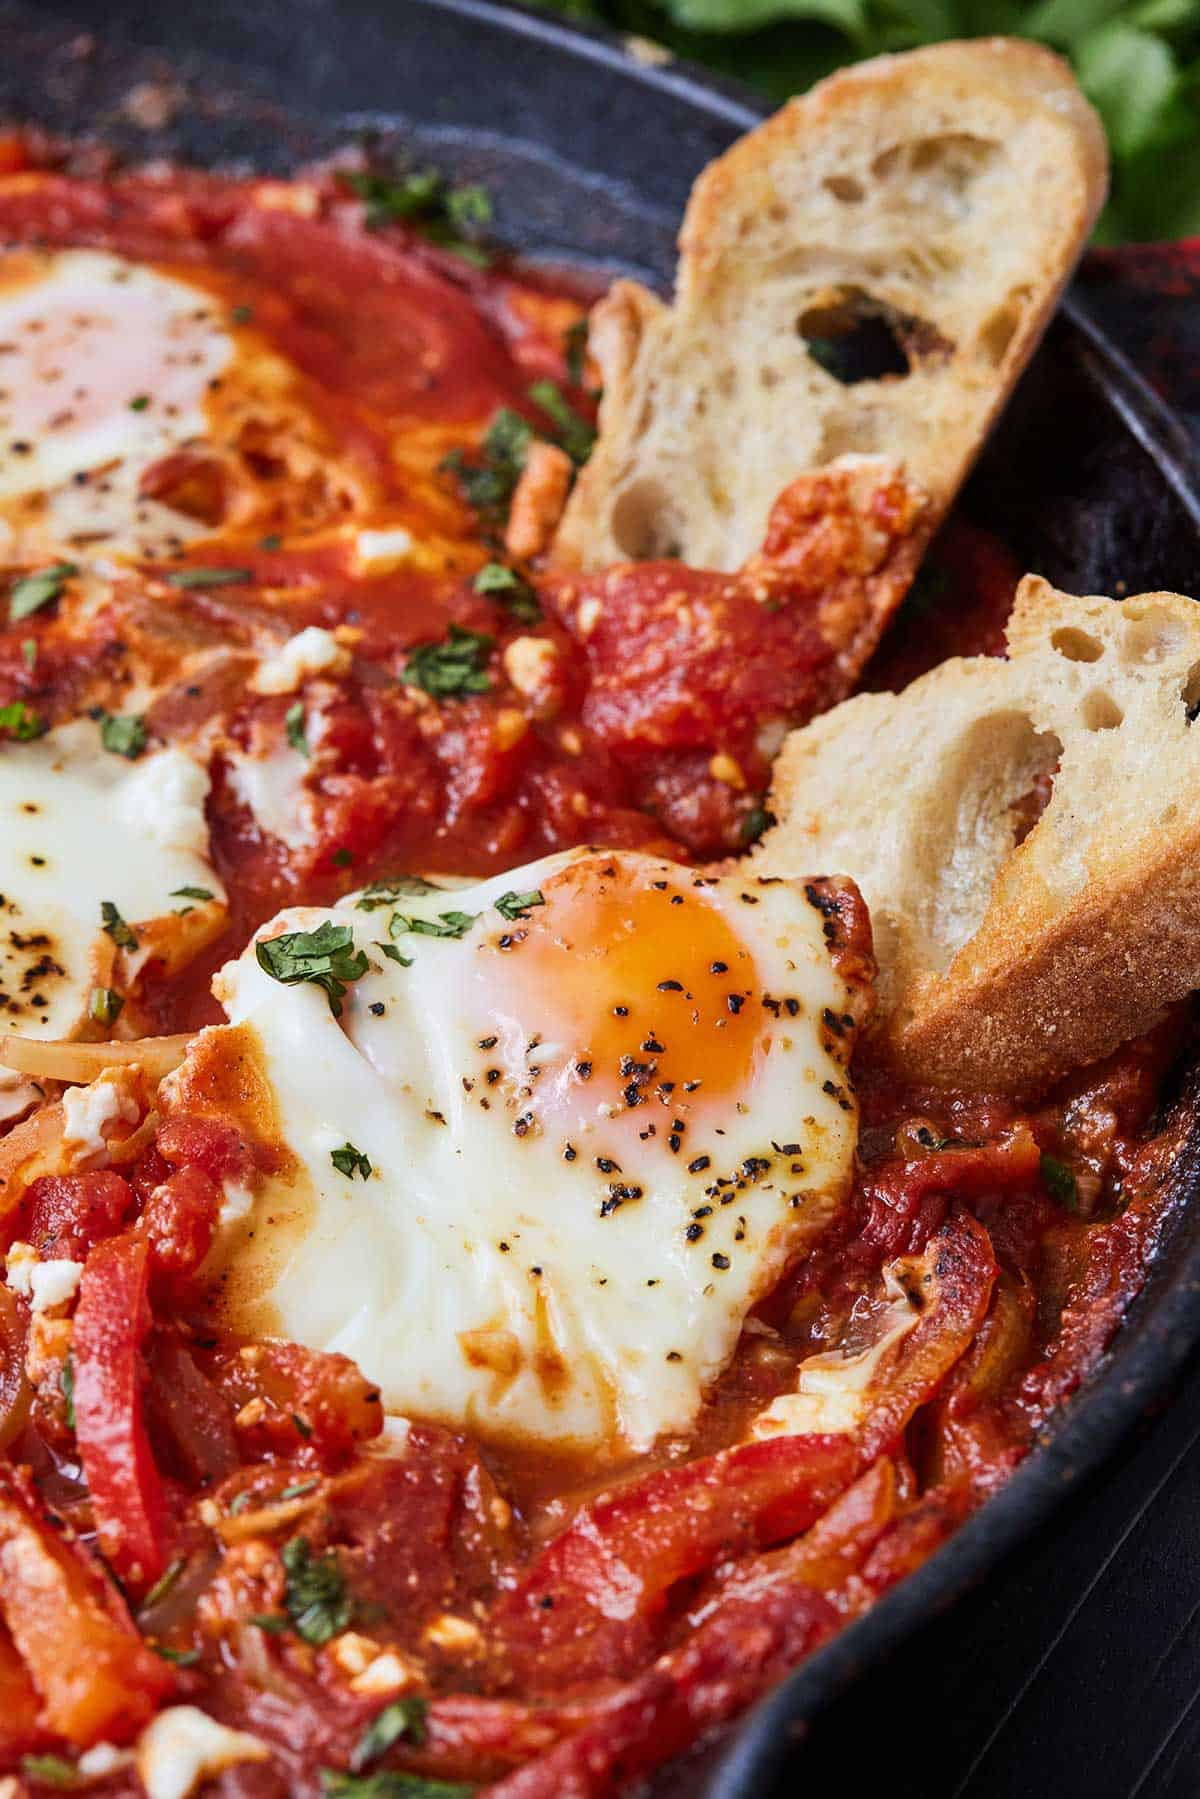 A pan of shakshuka with two pieces of bread dipped in the sauce beside an egg.